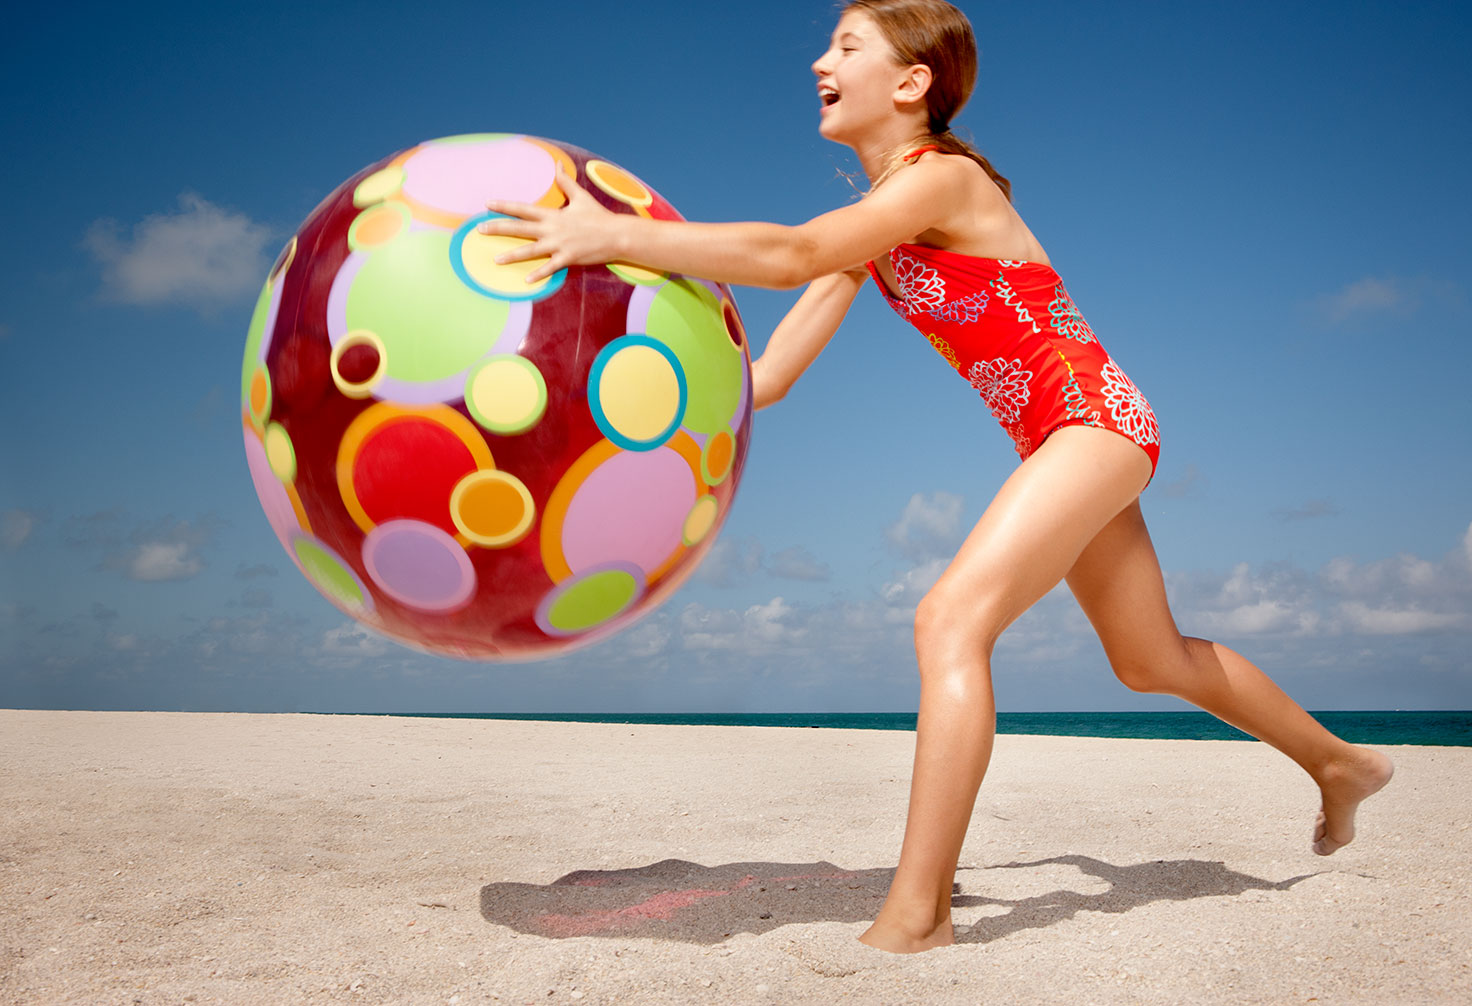 joSon childhood-Girl play with beach ball